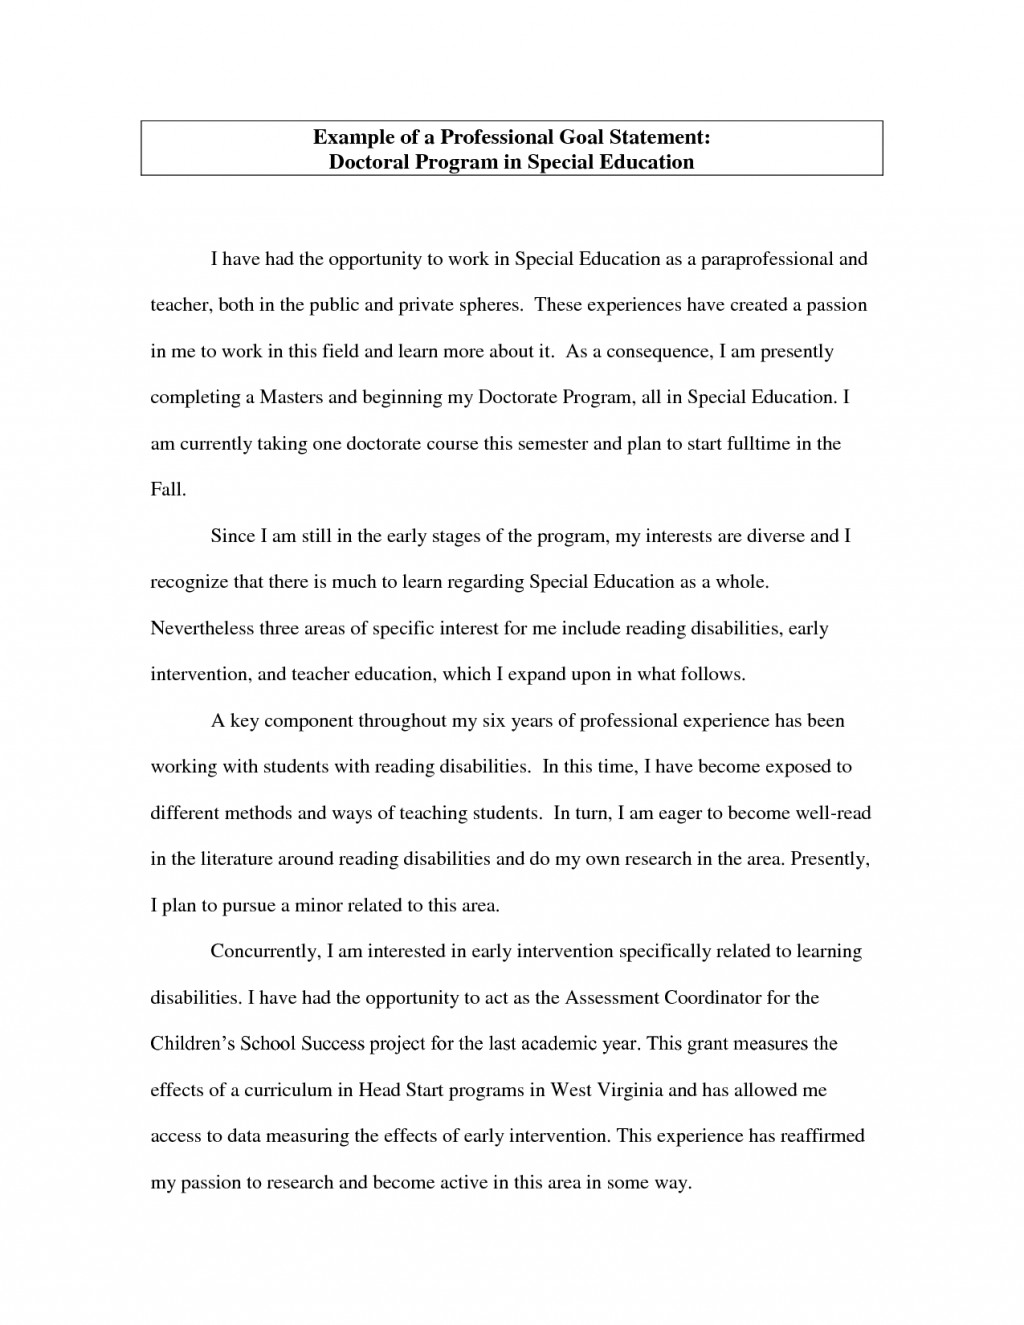 004 Research Paper Career Essay Examples School Reports In Class Of Their Own Telegraph The Topics Goal Statement Zdxttkpg Nursing20 1024x1325 College Fascinating Sample Large